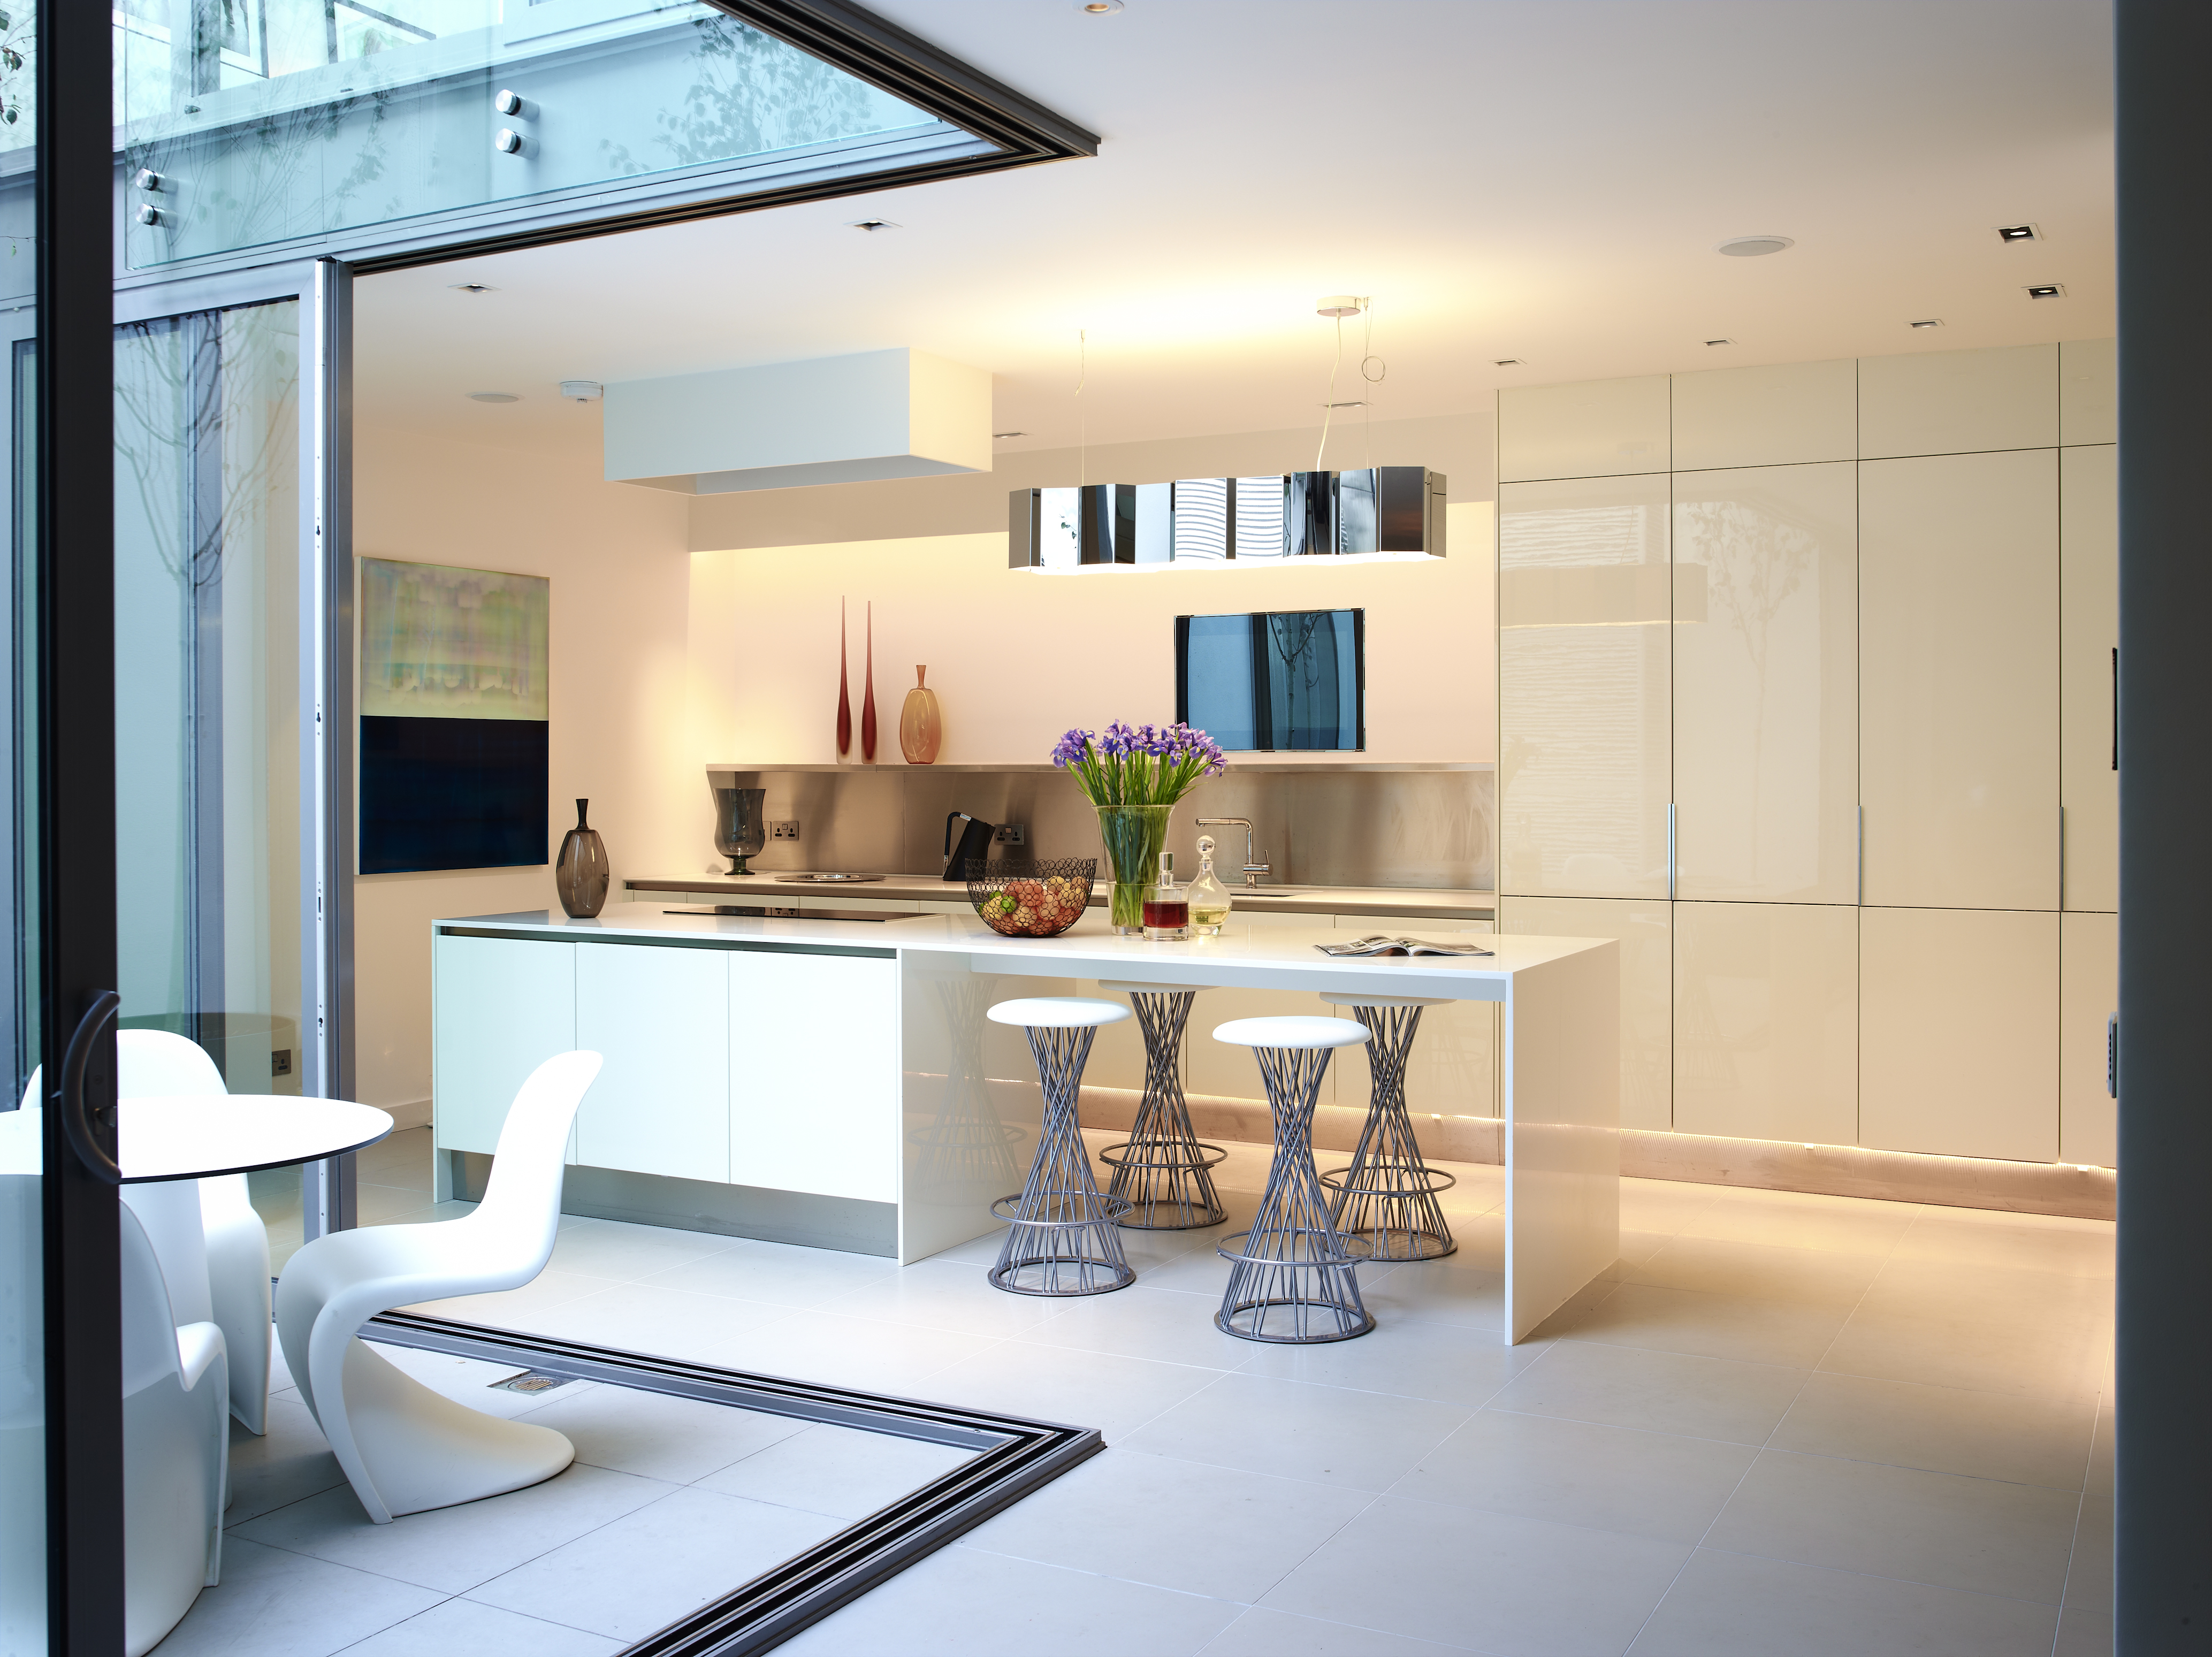 Kitchen Mayfair Mews Interior Design